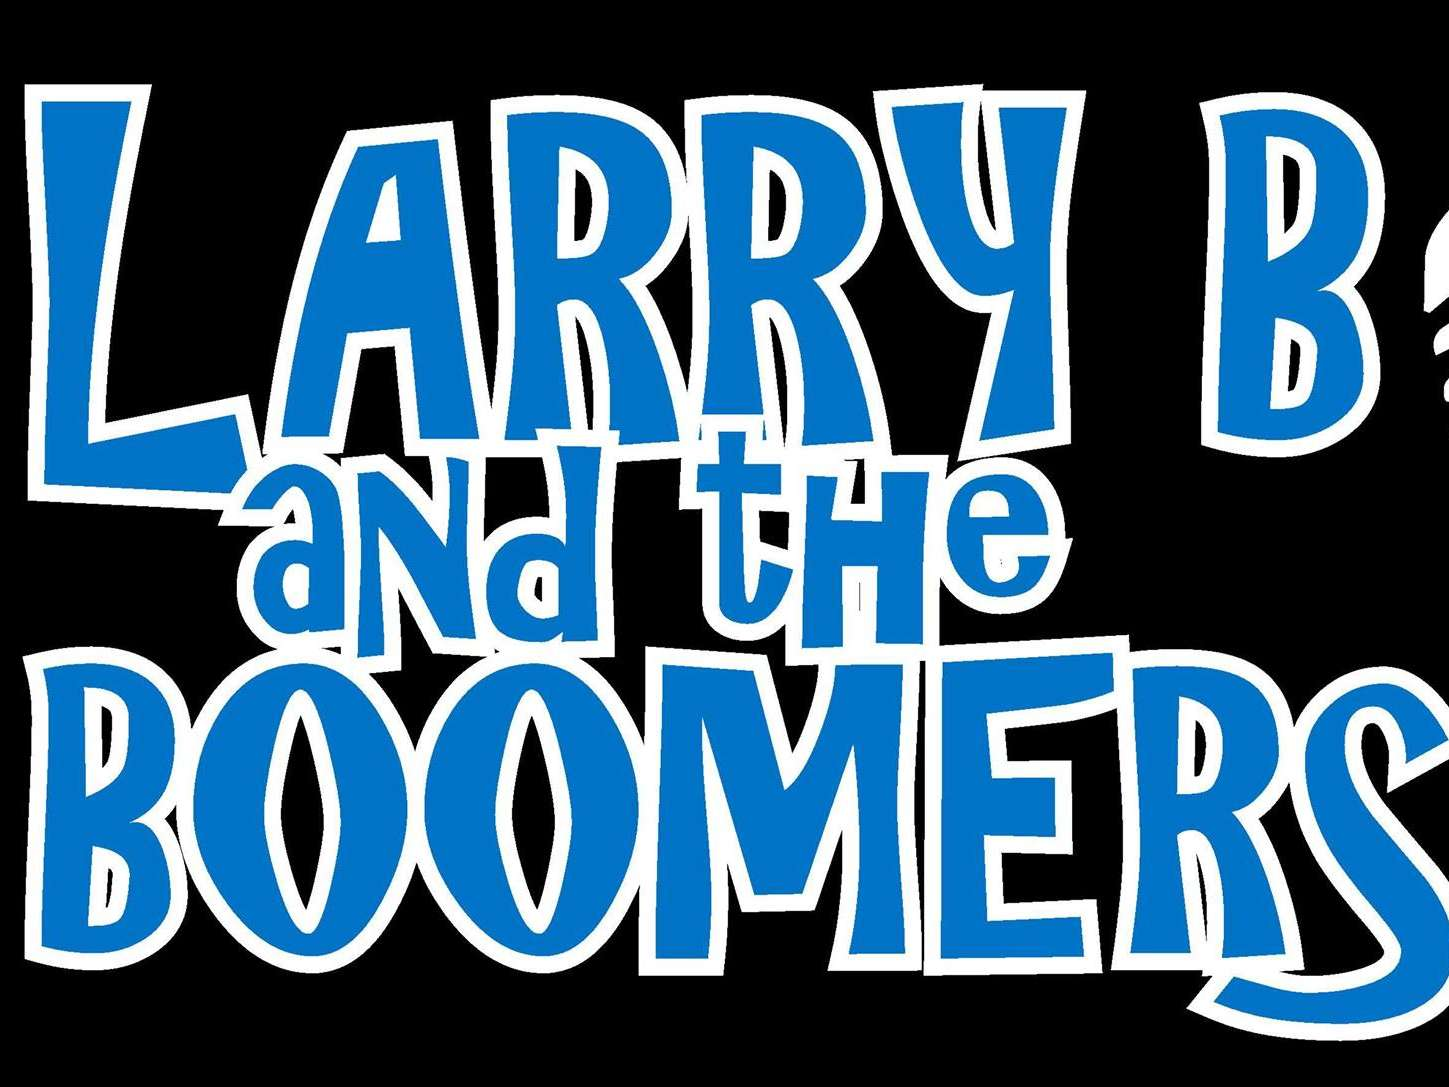 Larry B and the Boomers